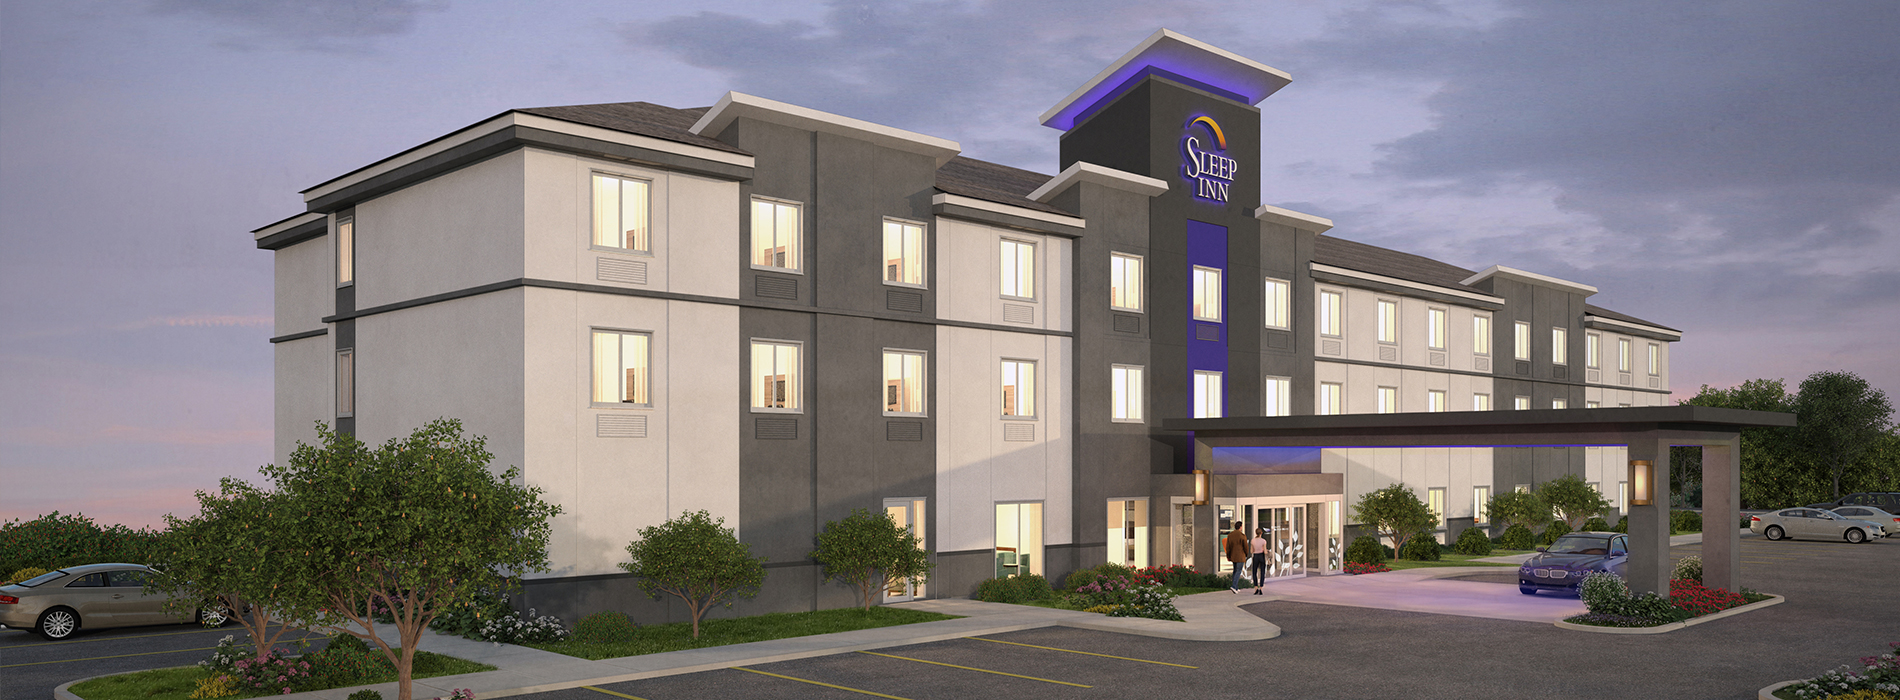 Sleep Inn's new simply stylish updates include a sleek, modernized tower, slimmed porte cochere, a warm gray exterior, LED accent lighting and nature-inspired door appliques.